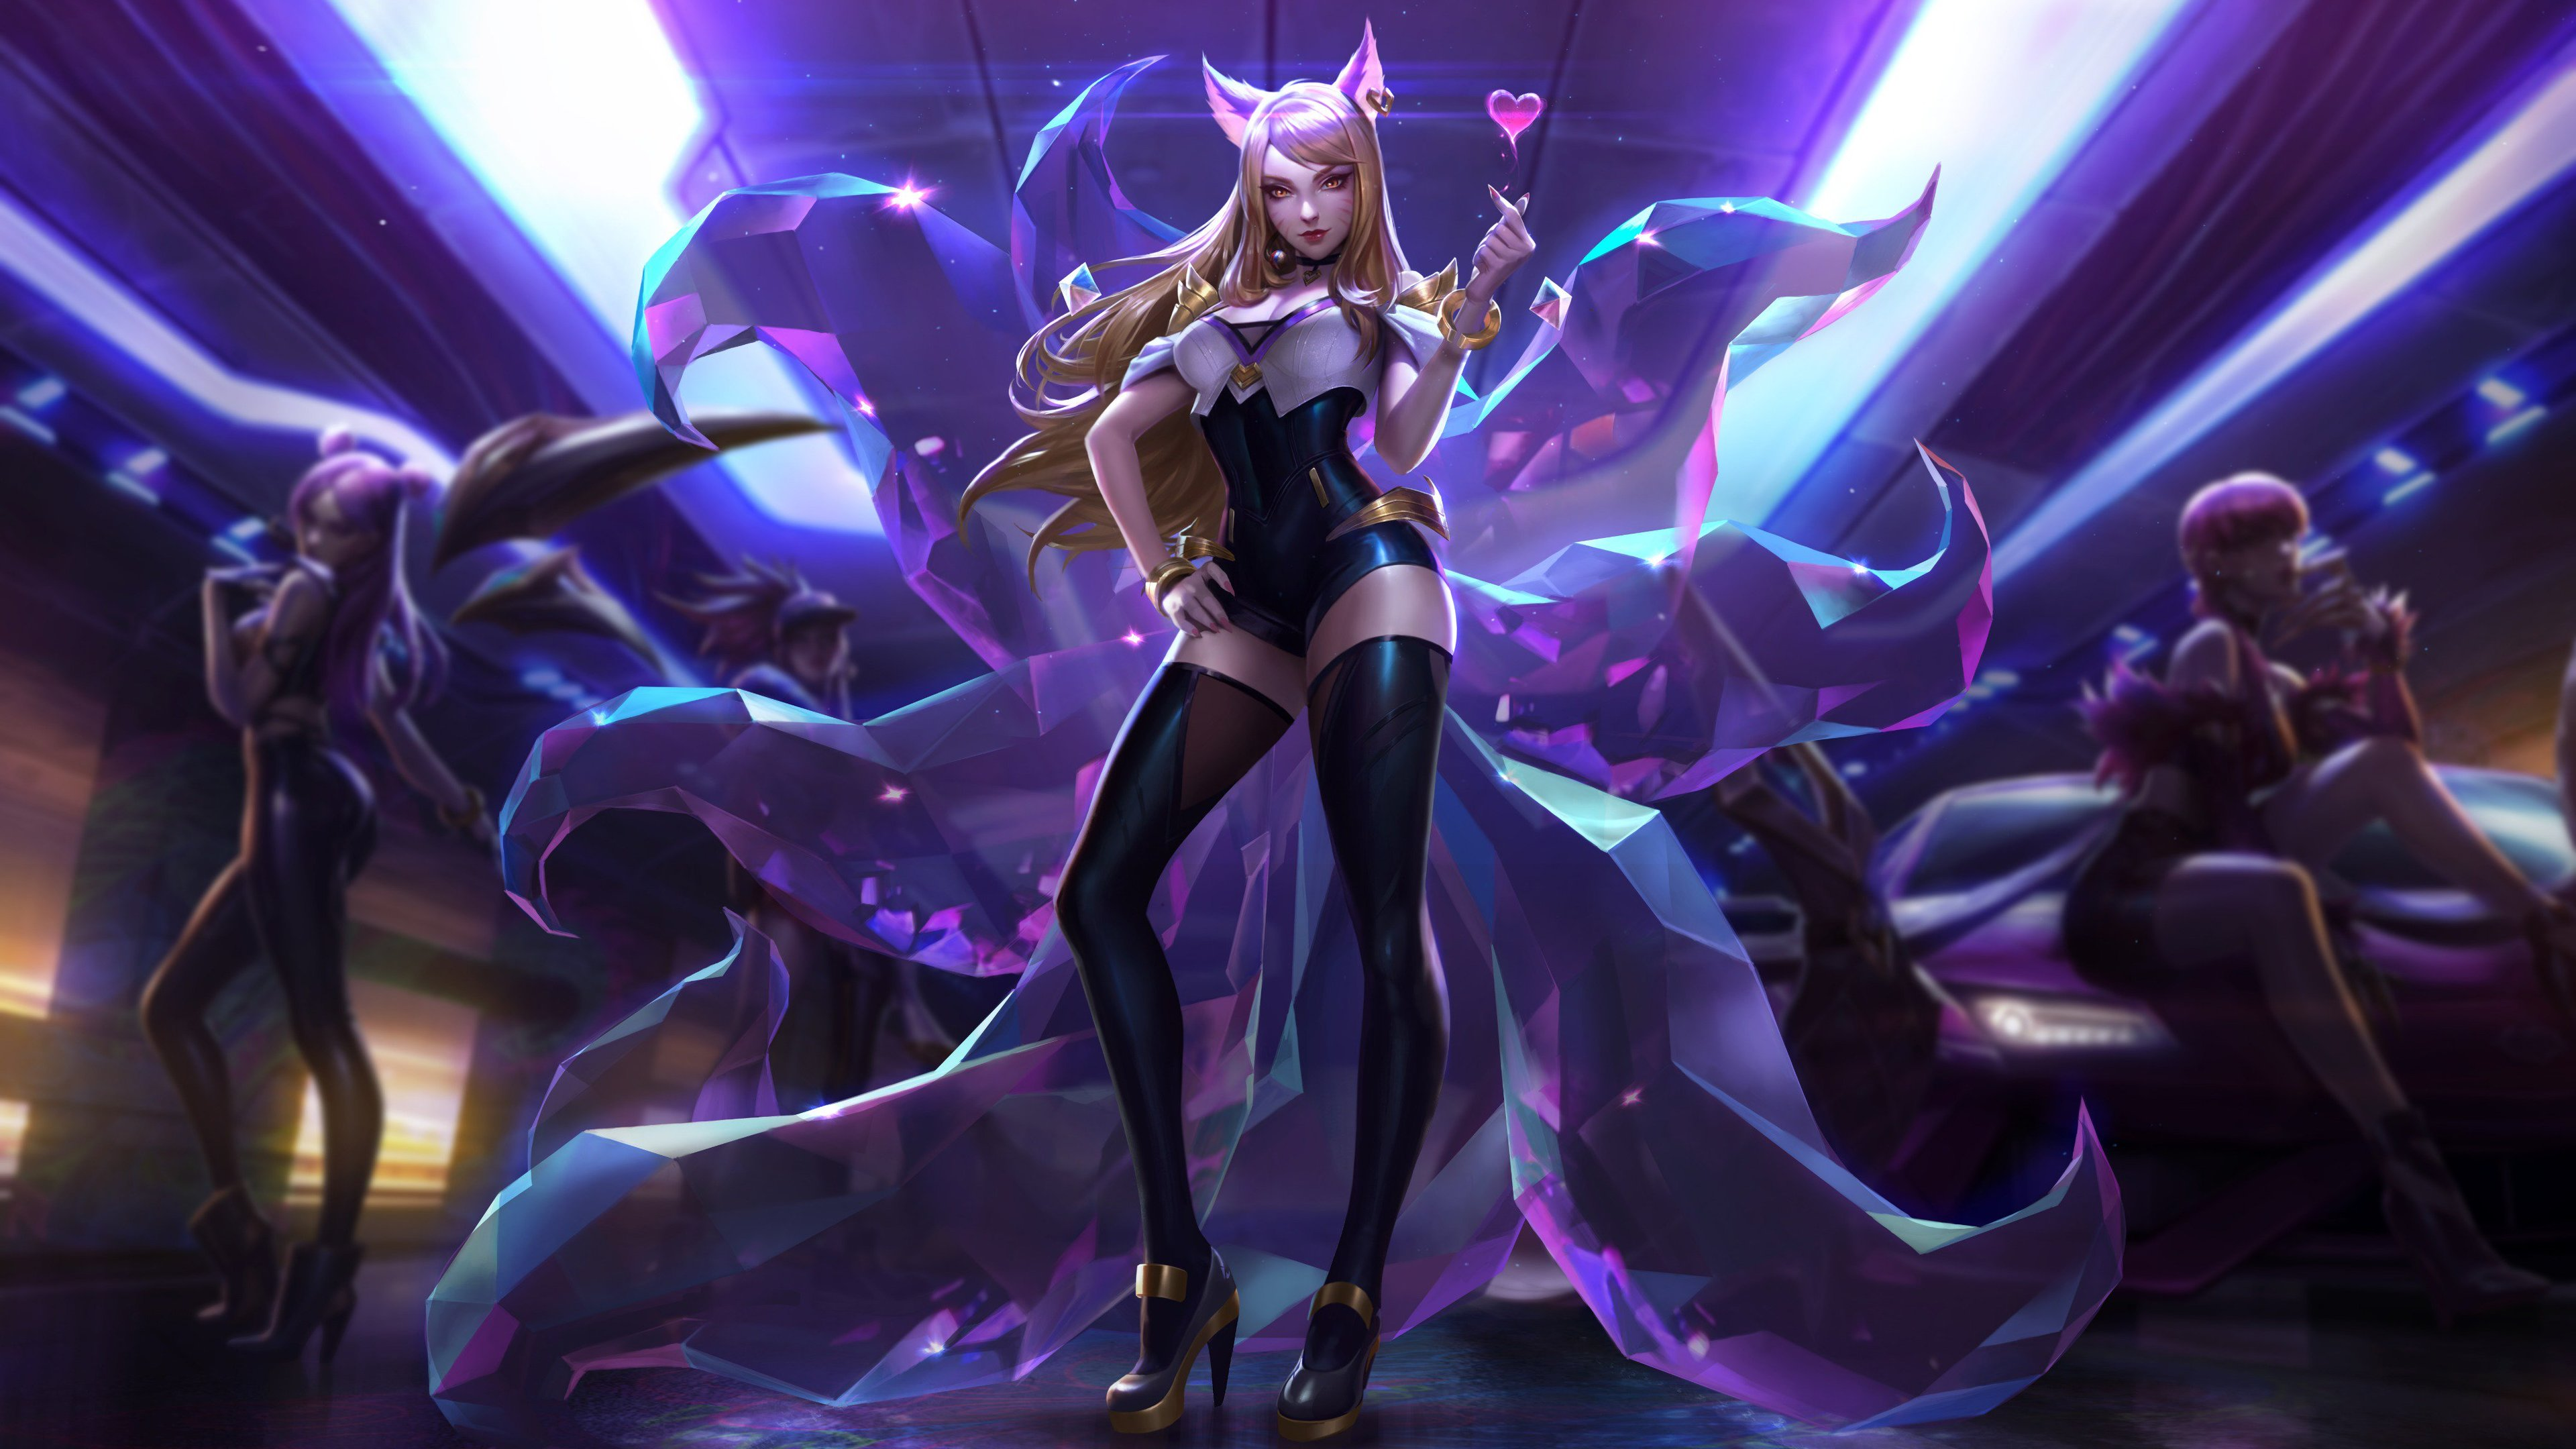 Wallpaper 4k Ahri League Of Legends 4k 4k Wallpapers Games